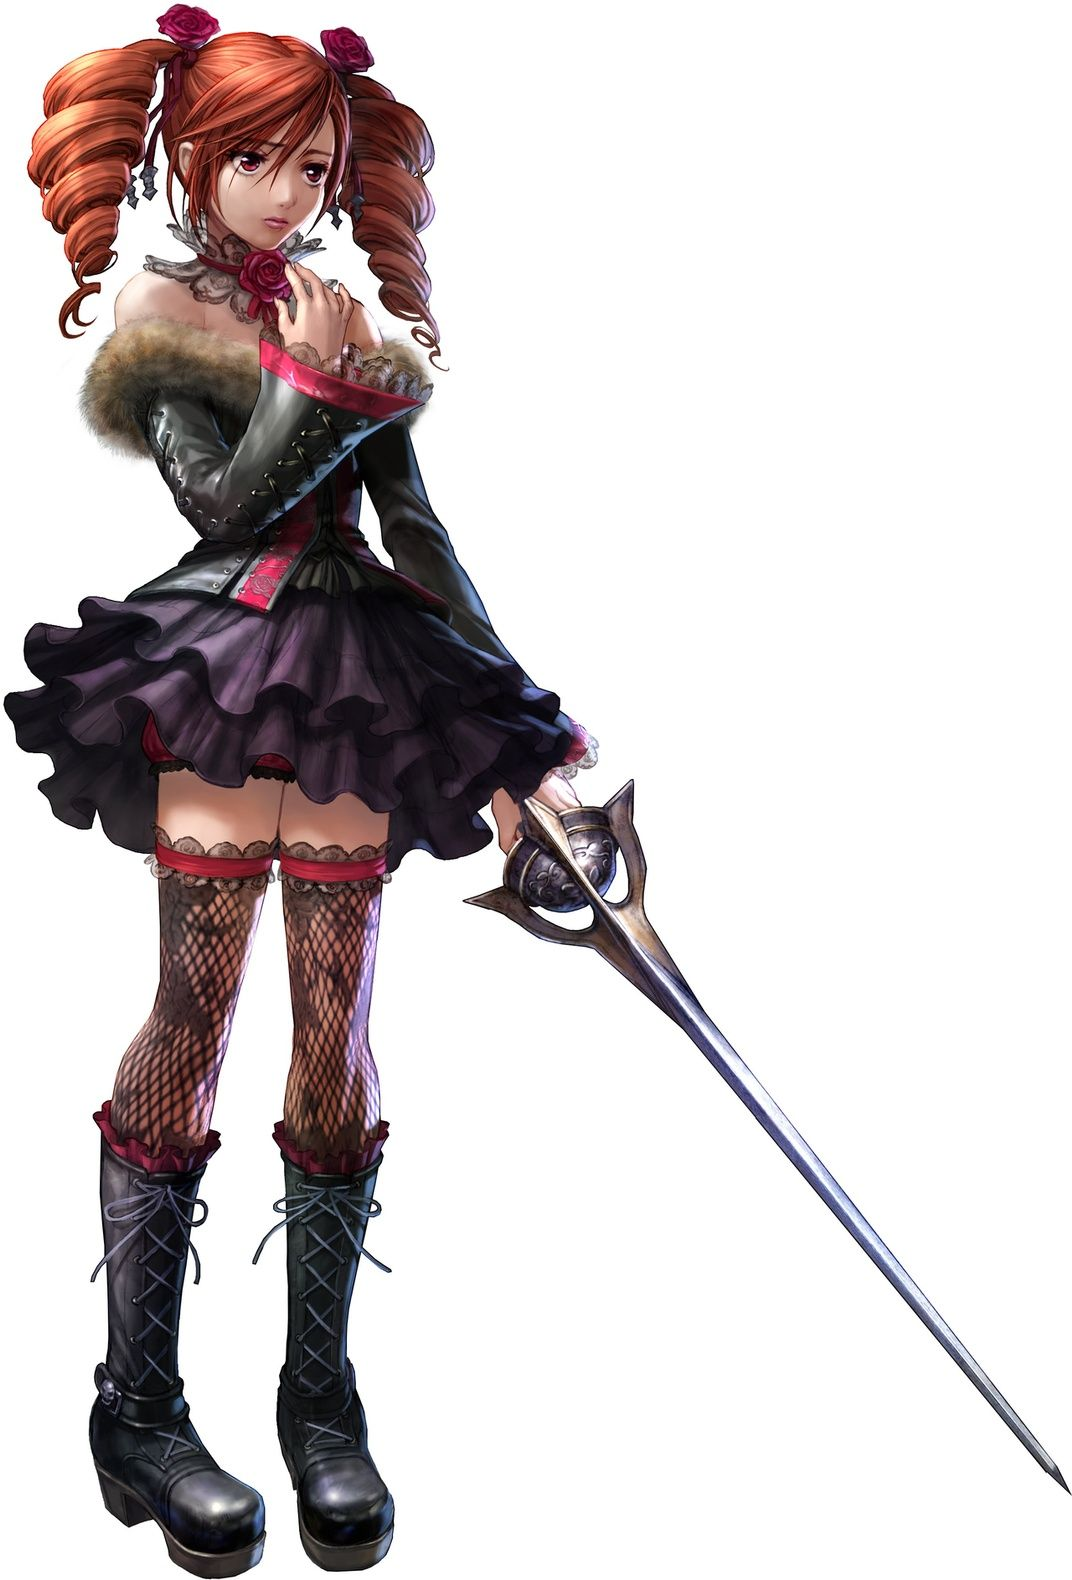 Soul Calibur V Anime Characters : One of my favorite soul calibur characters anime art